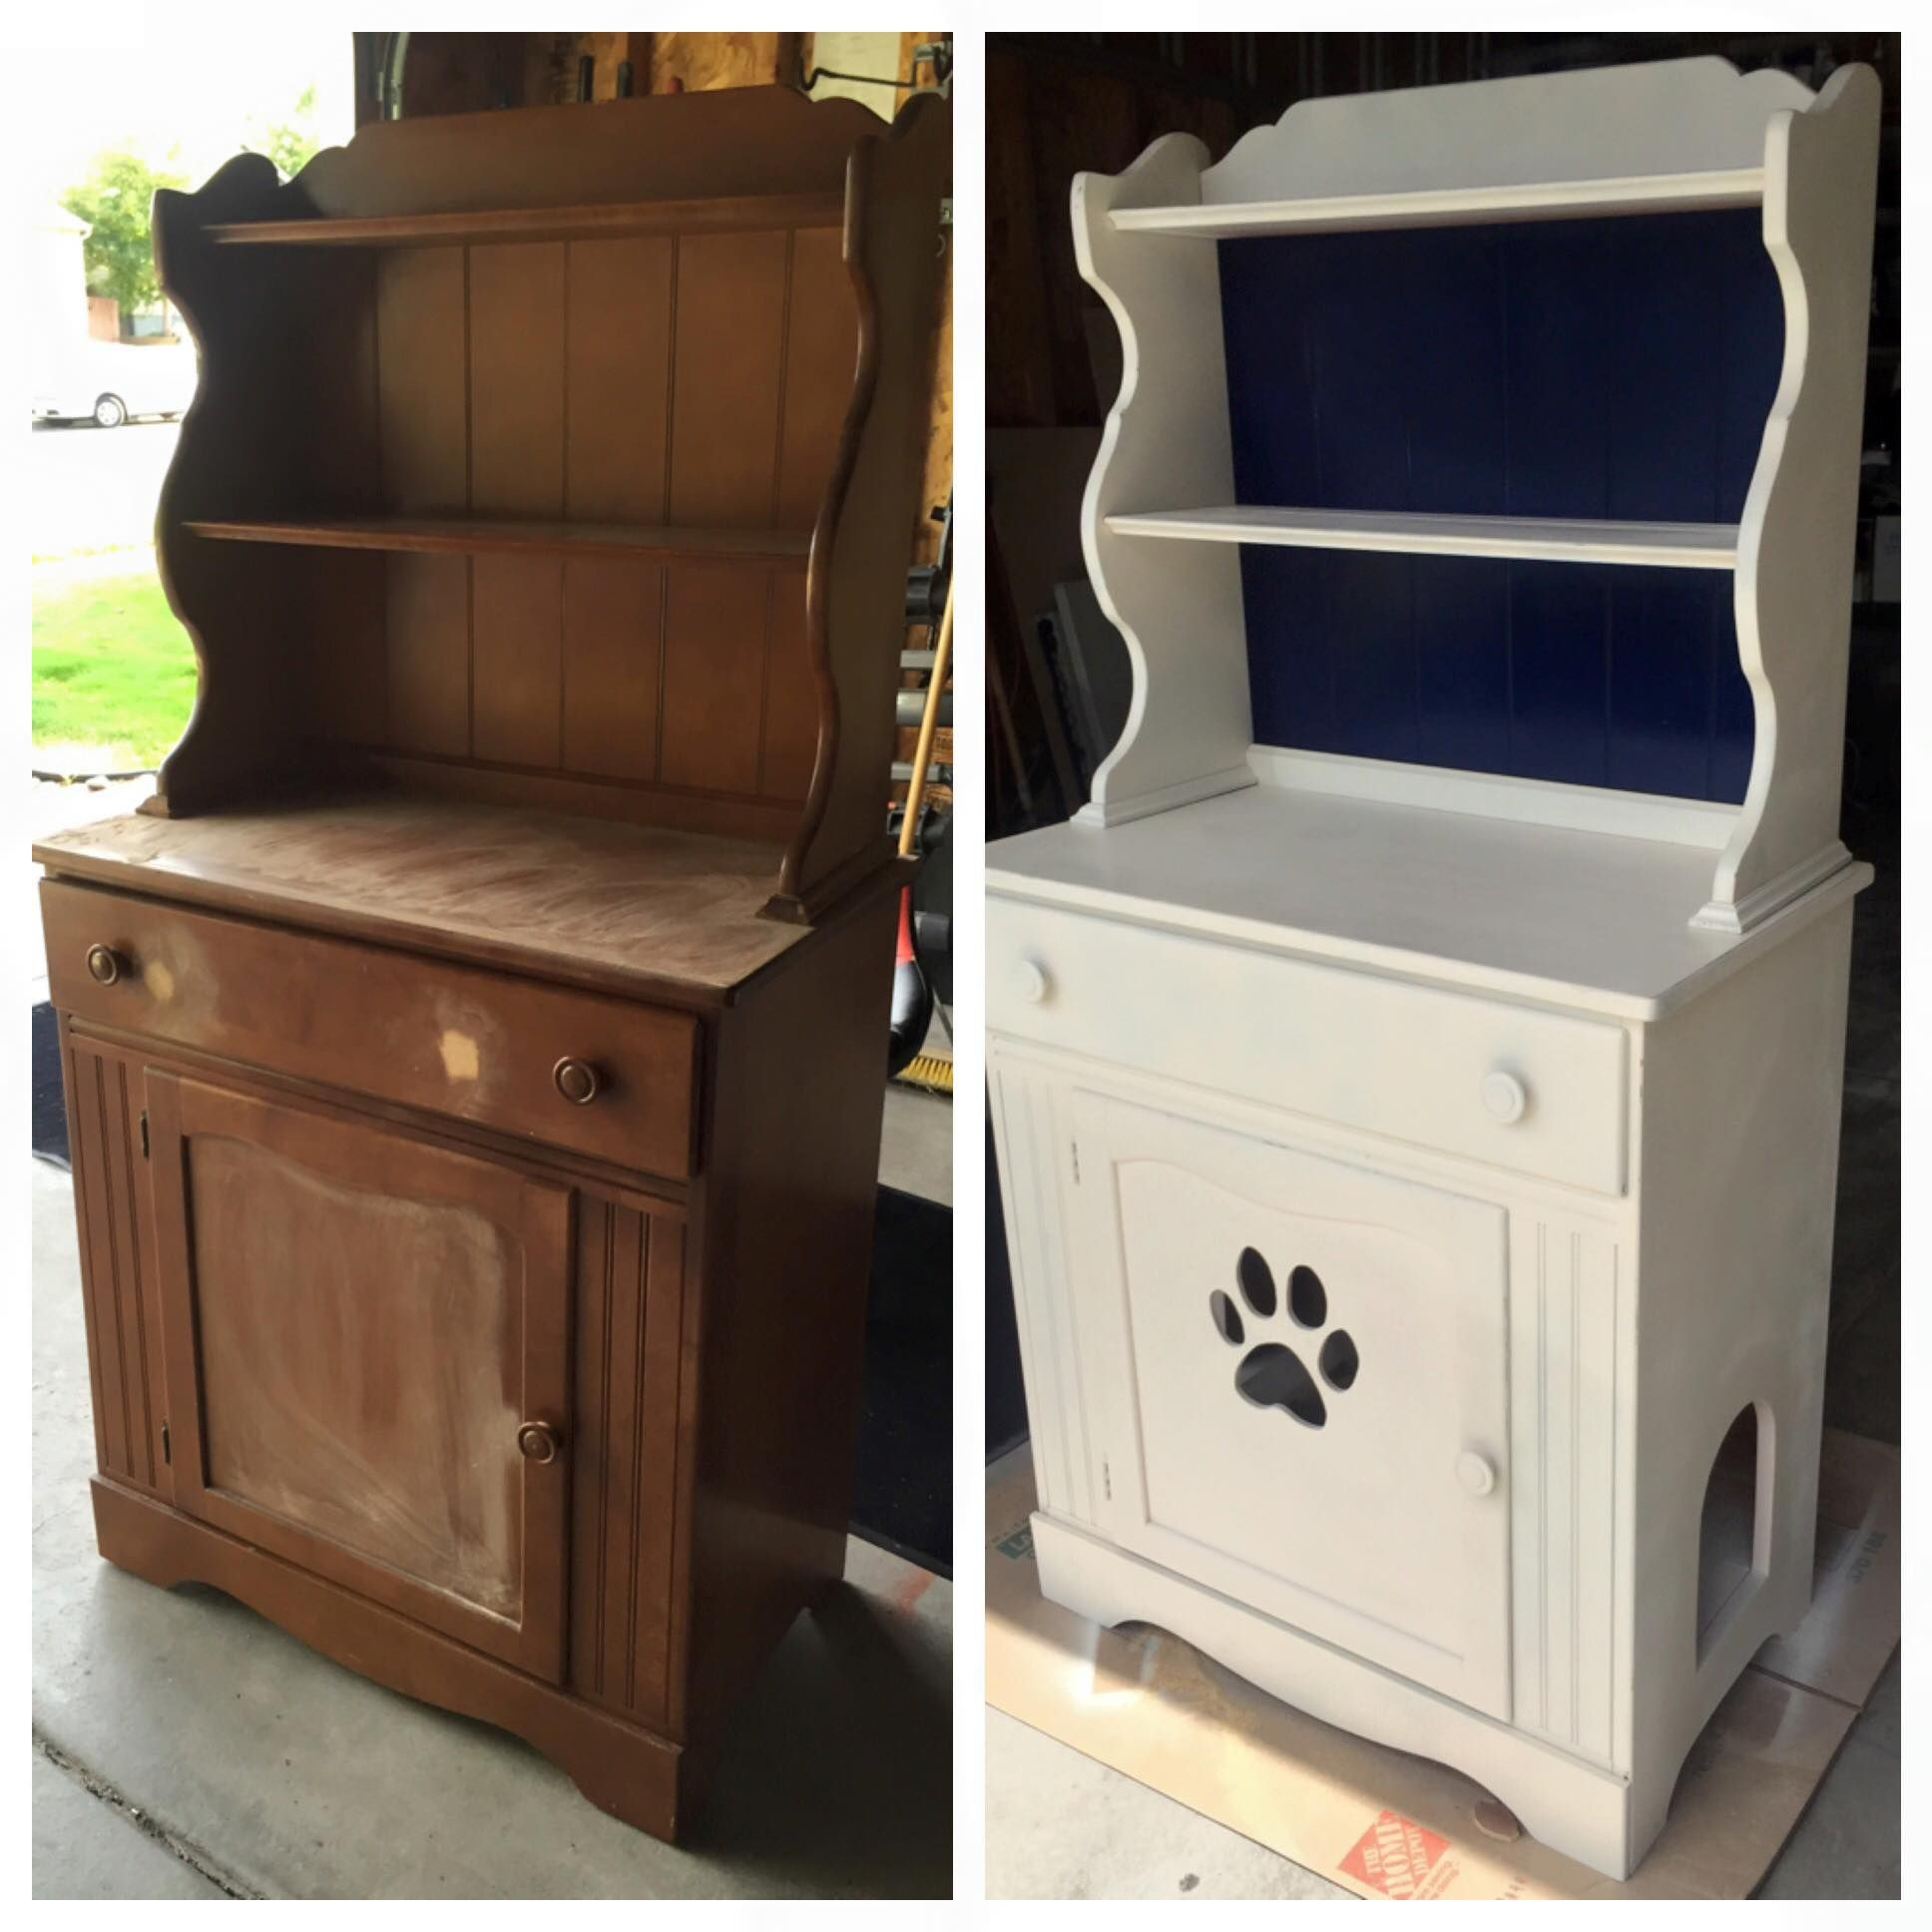 Best ideas about DIY Litter Box Enclosure . Save or Pin DIY Refurbished a cabinet to hide the cat litter box Now.